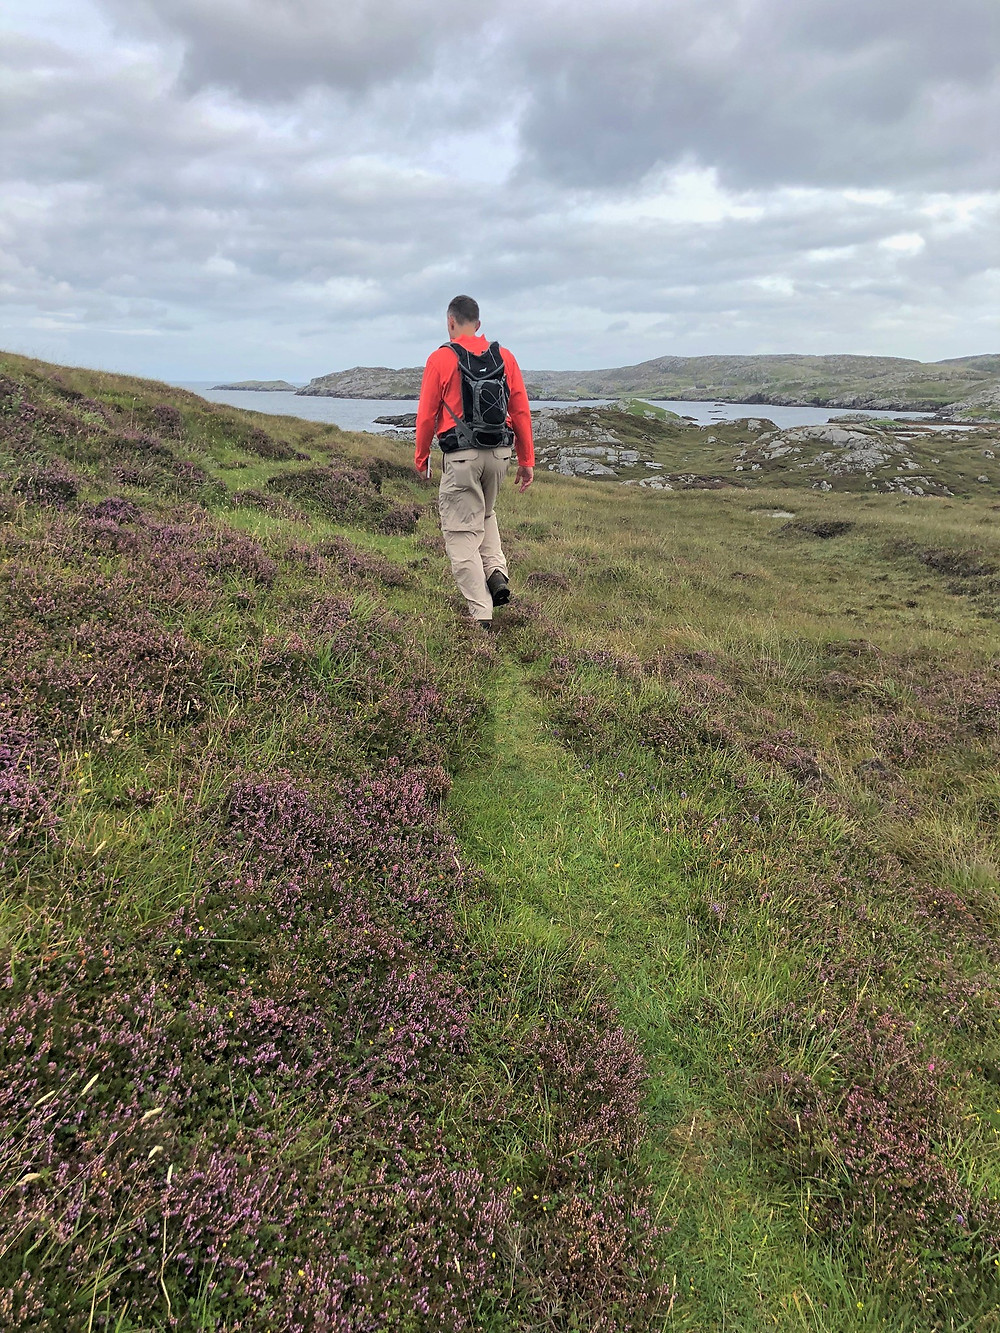 Fields were covered in flowering heather bushes on Great Bernera Loop hike on the NW coast of Isle of Lewis, Outer Hebrides